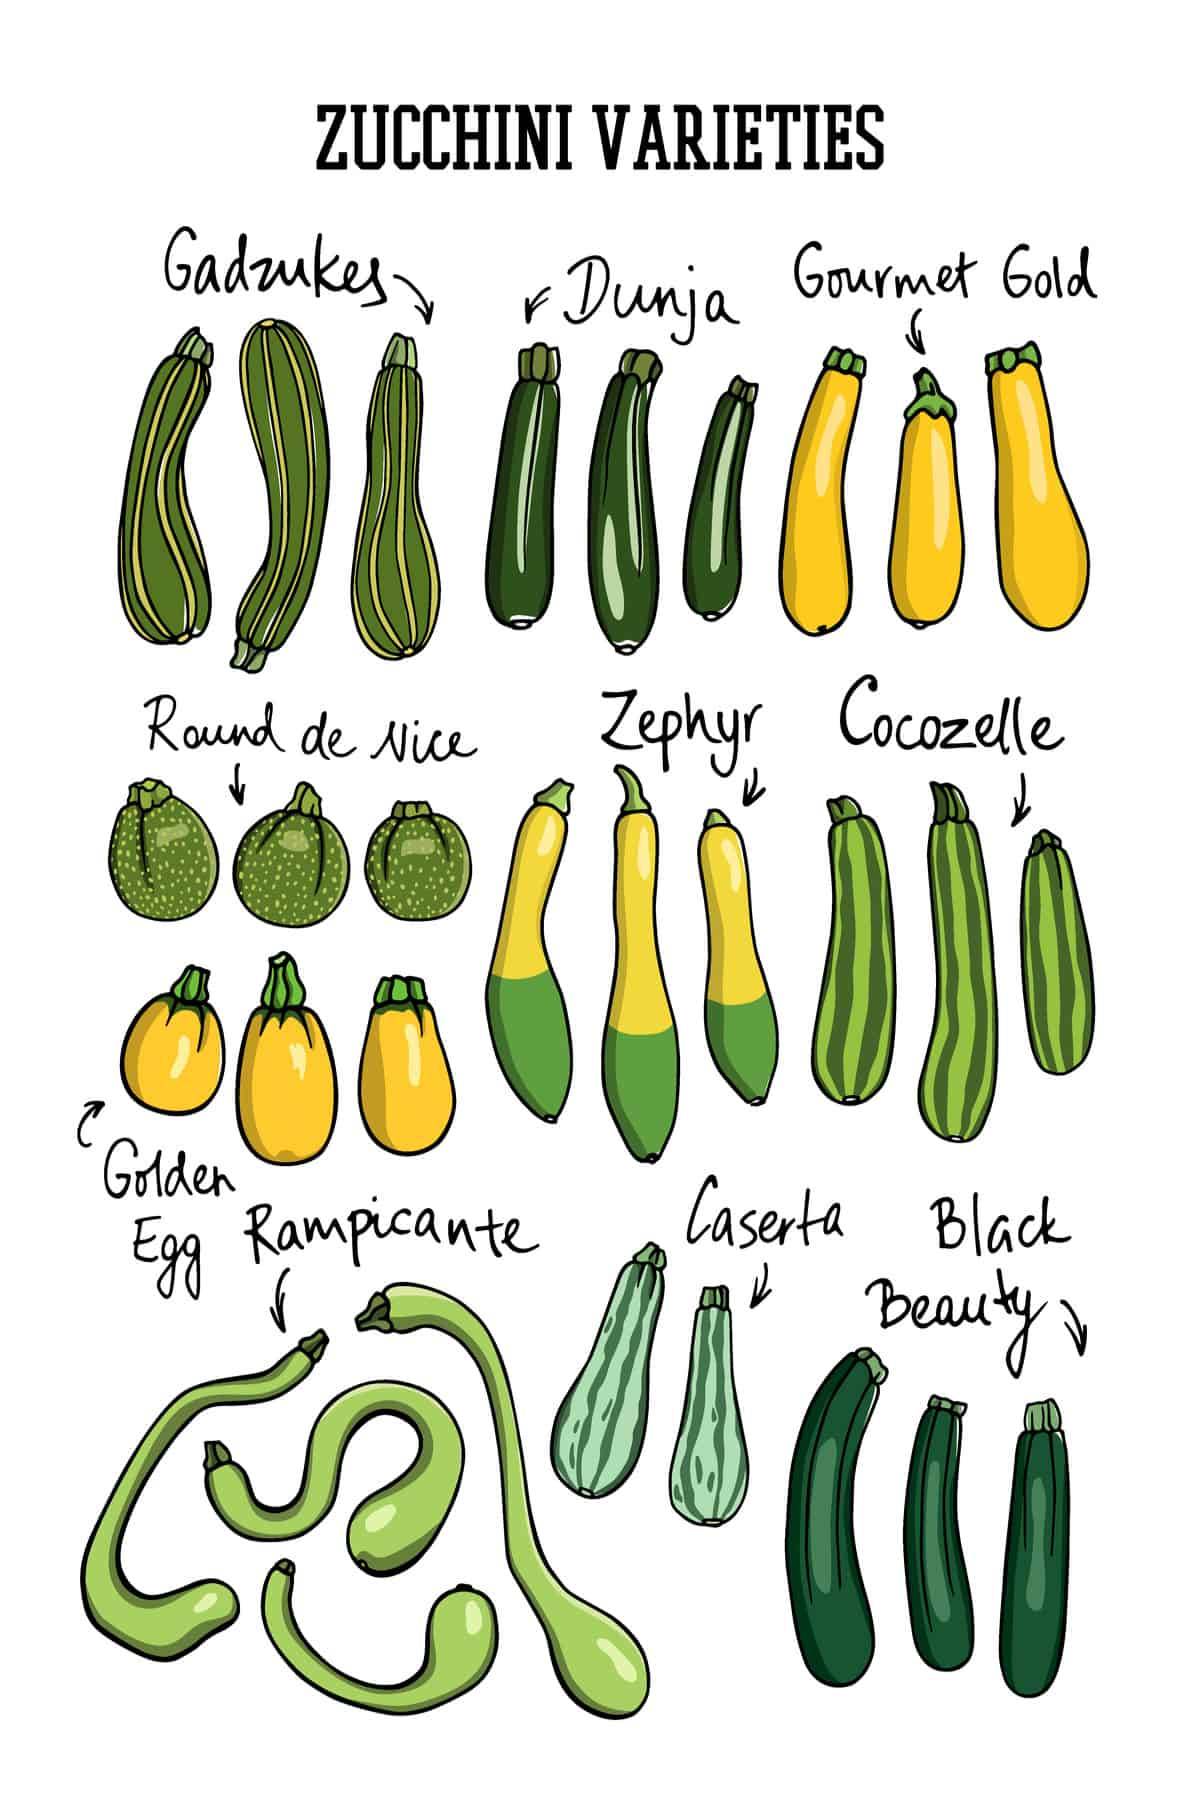 A chart showing the types of zucchini.